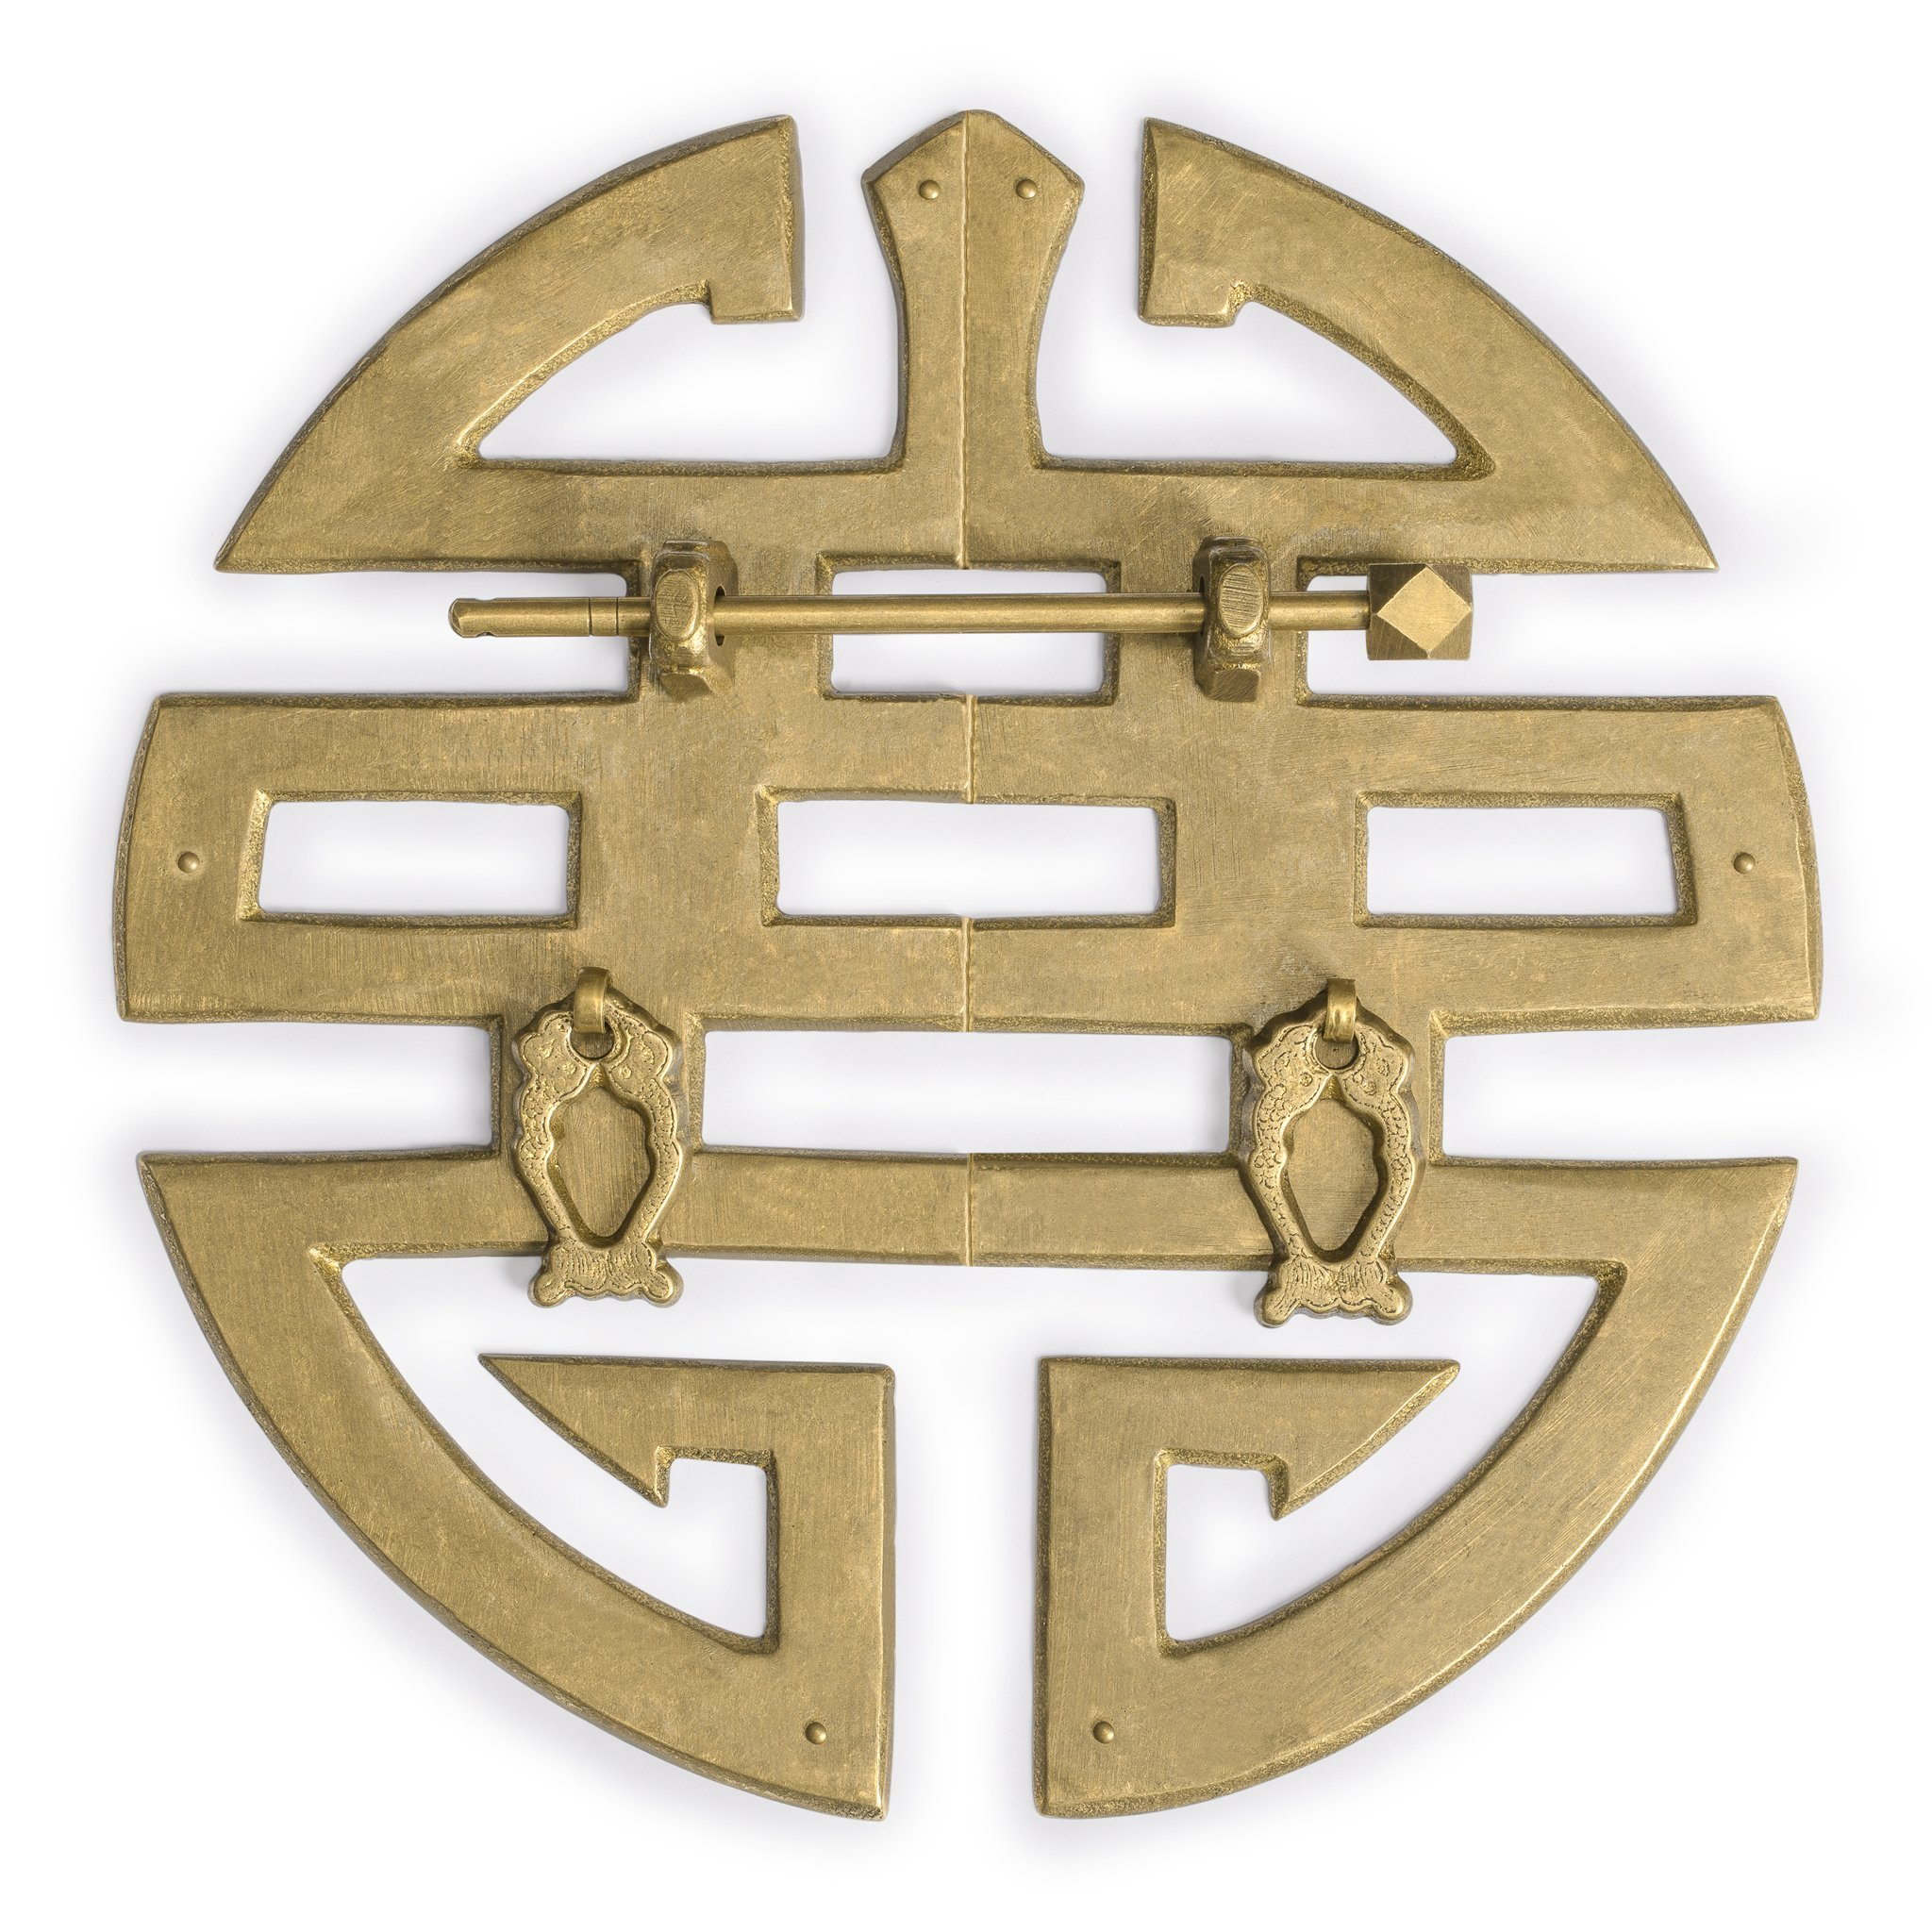 CBH Brass Happiness Character Cabinet Face Plate Backplate Hardware Set 9.6''